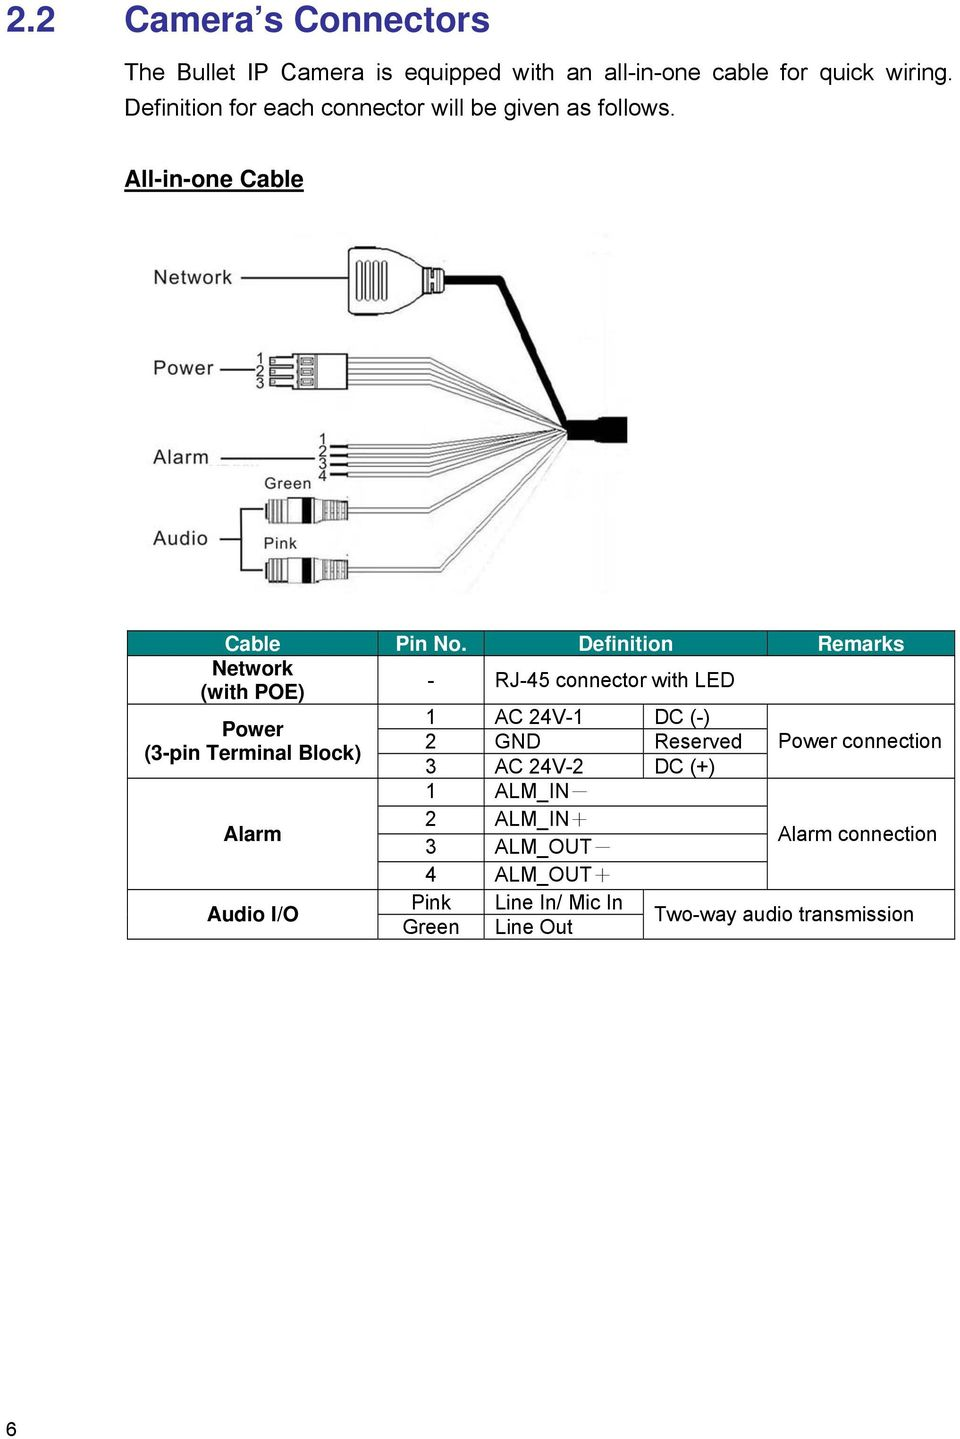 Hd1080p Ir Bullet Ip Camera Pdf Wiring Diagram Definition Remarks Network Rj 45 Connector With Led Poe 1 Ac